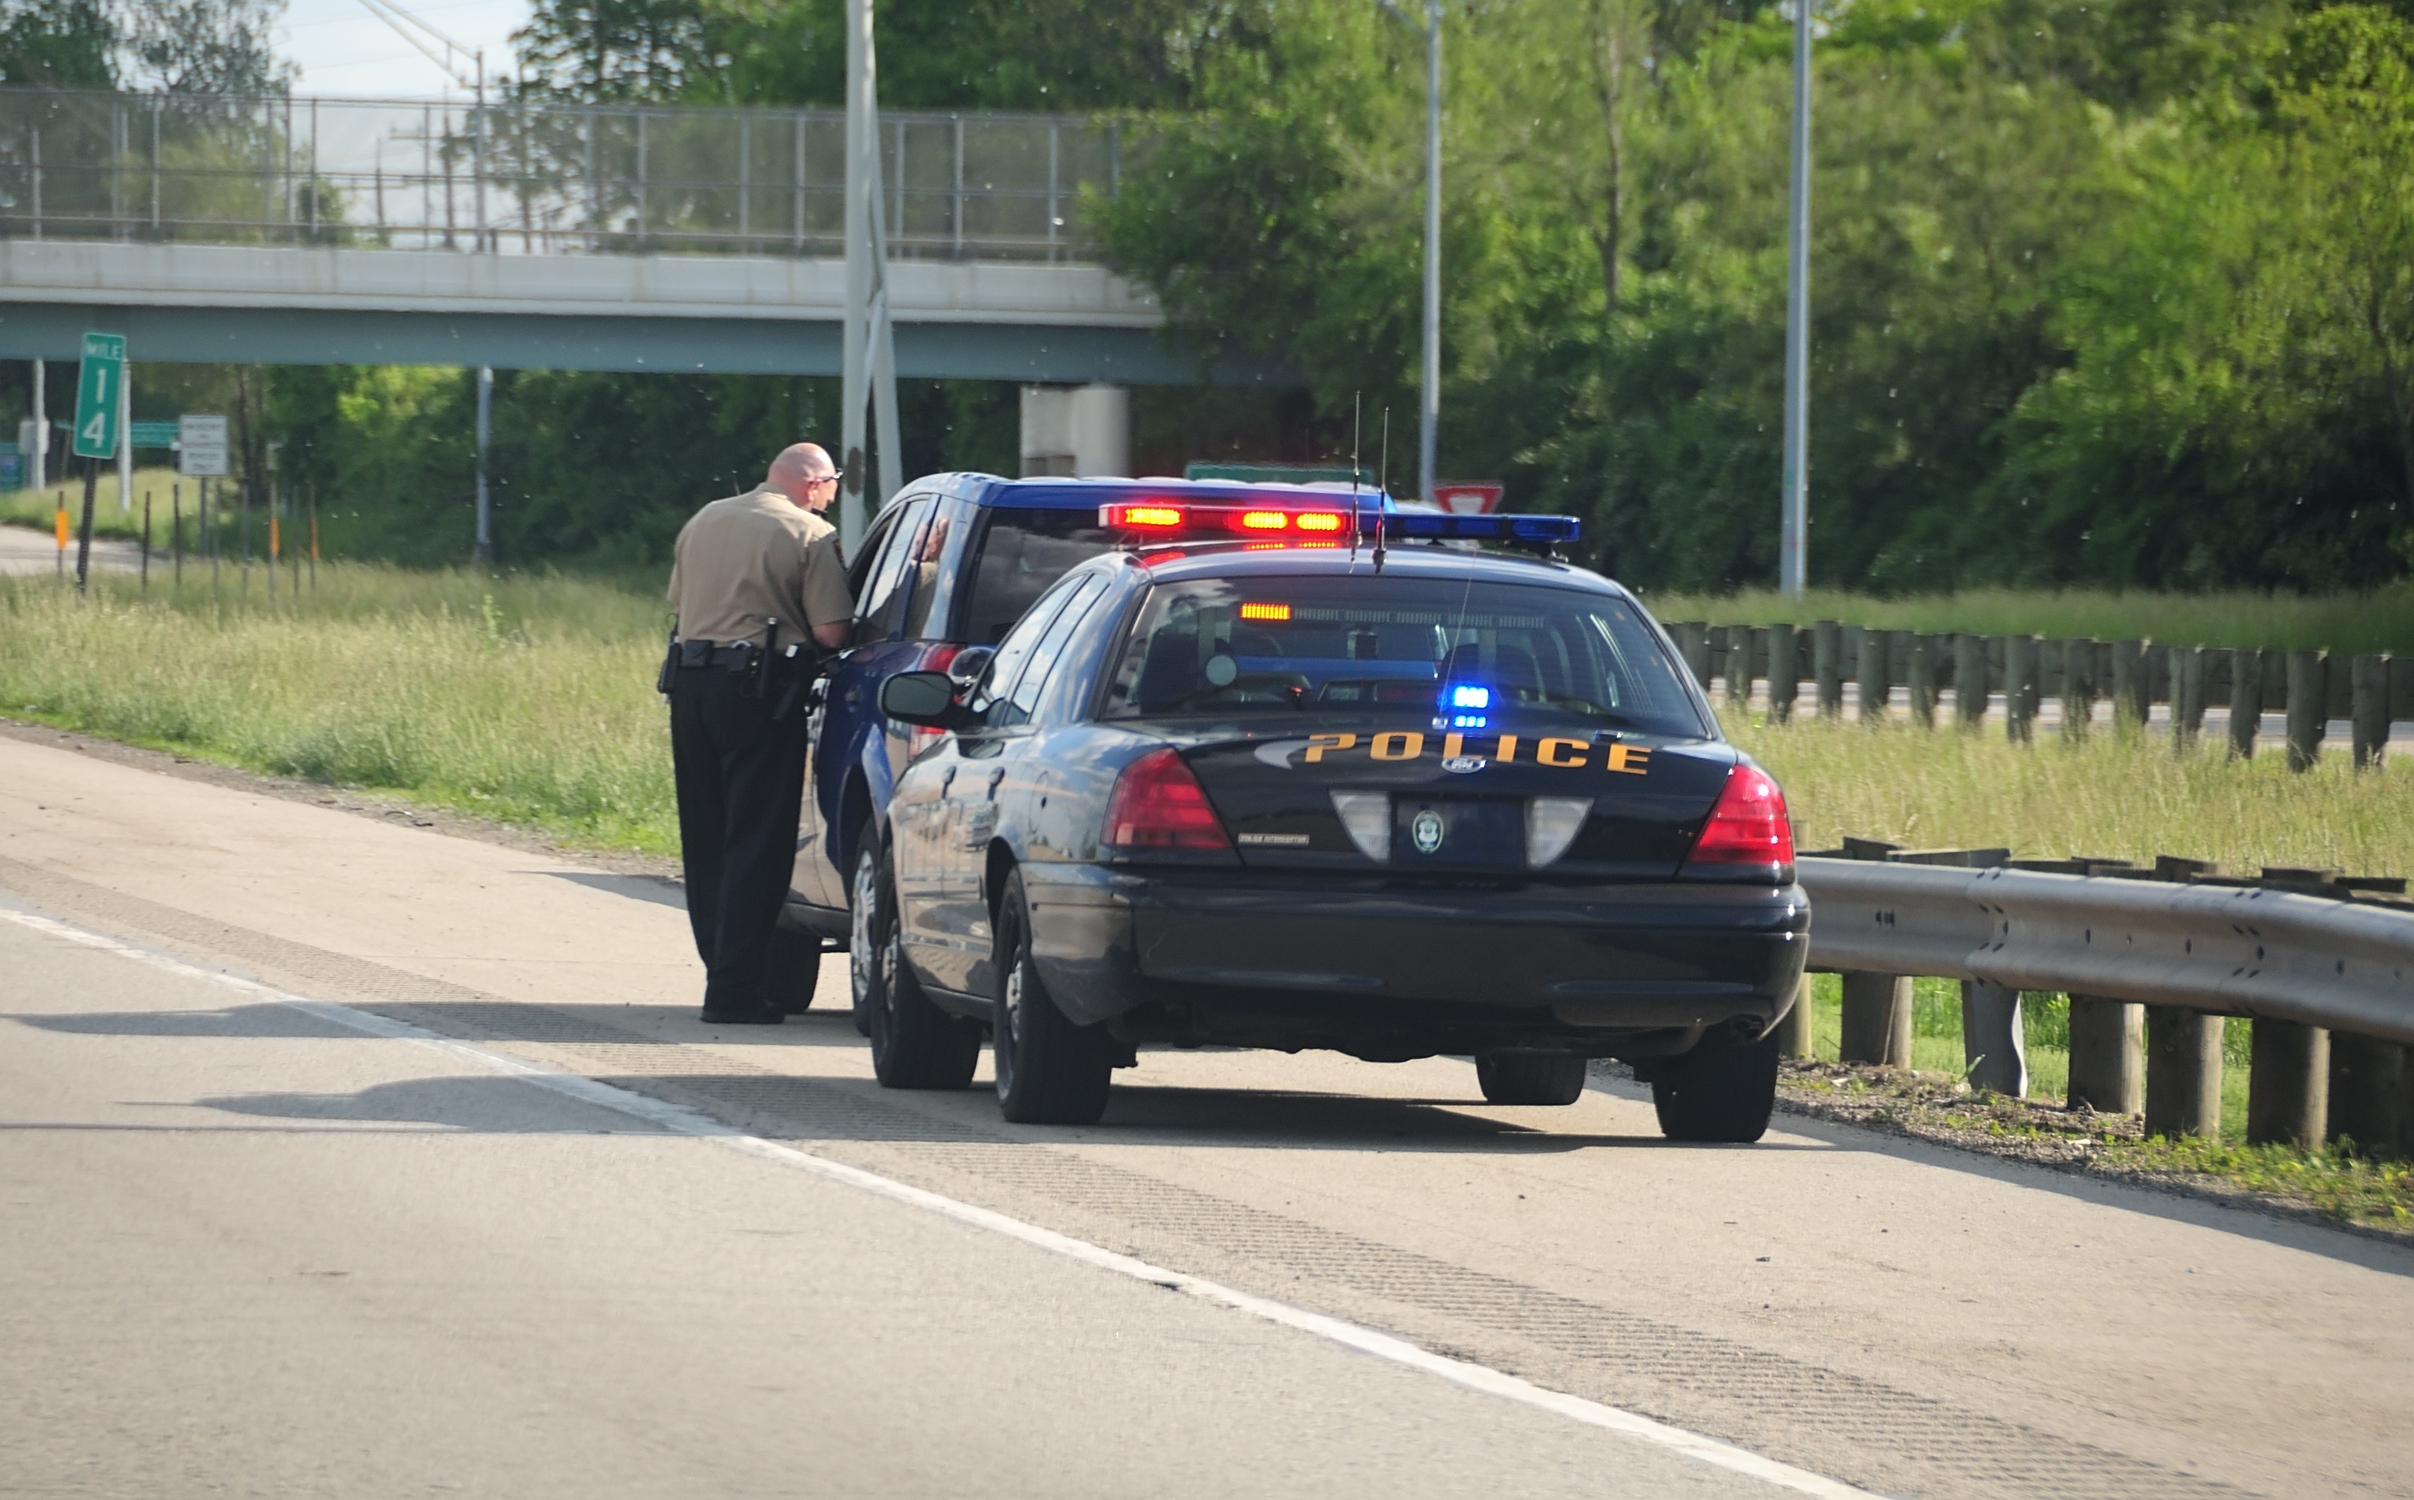 Traffic Stop Safety Tips for Policemen - Kova Corp